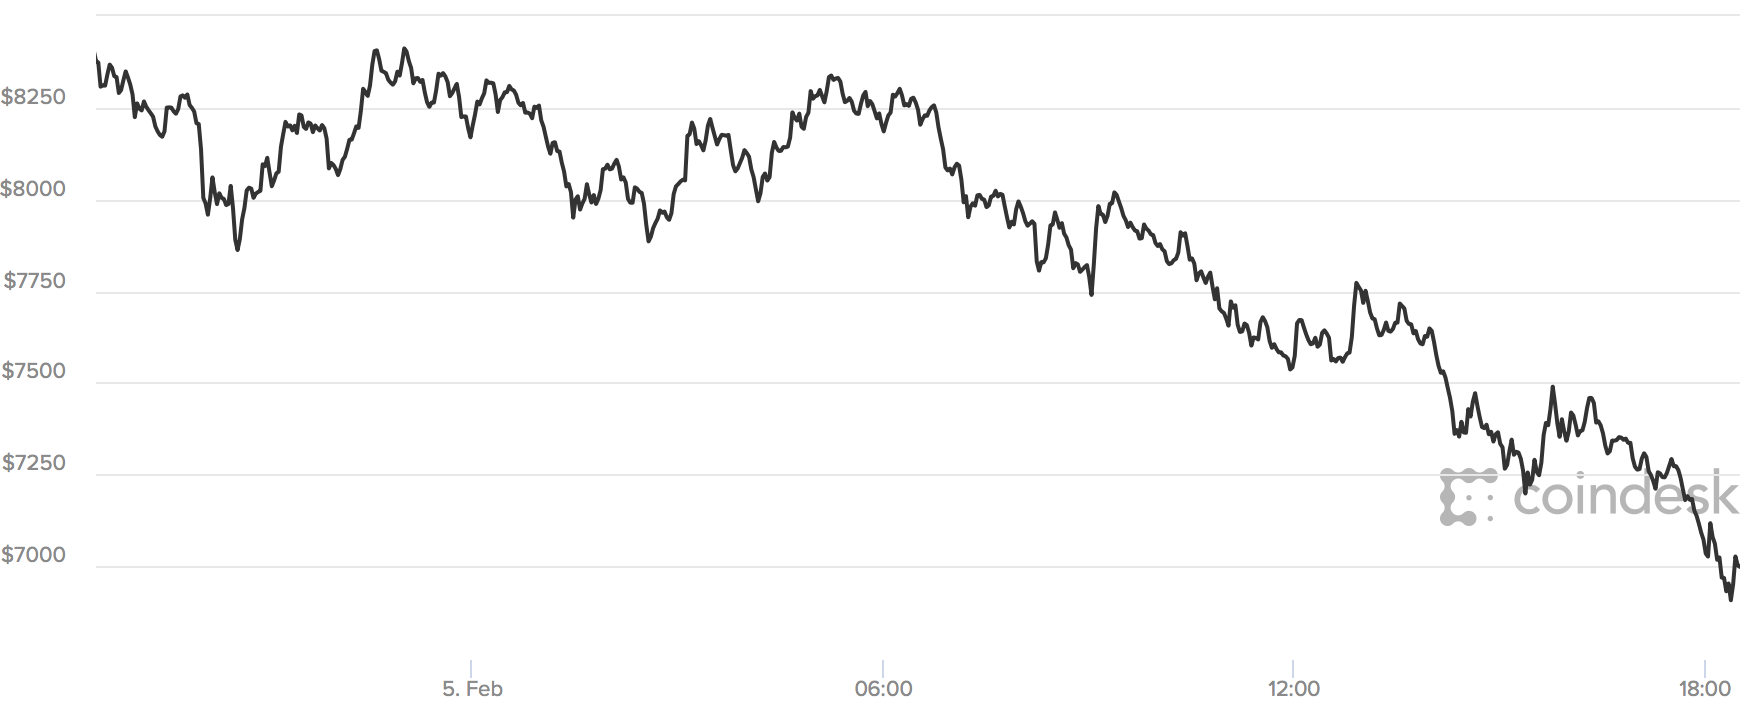 24 hours of Bitcoin prices.